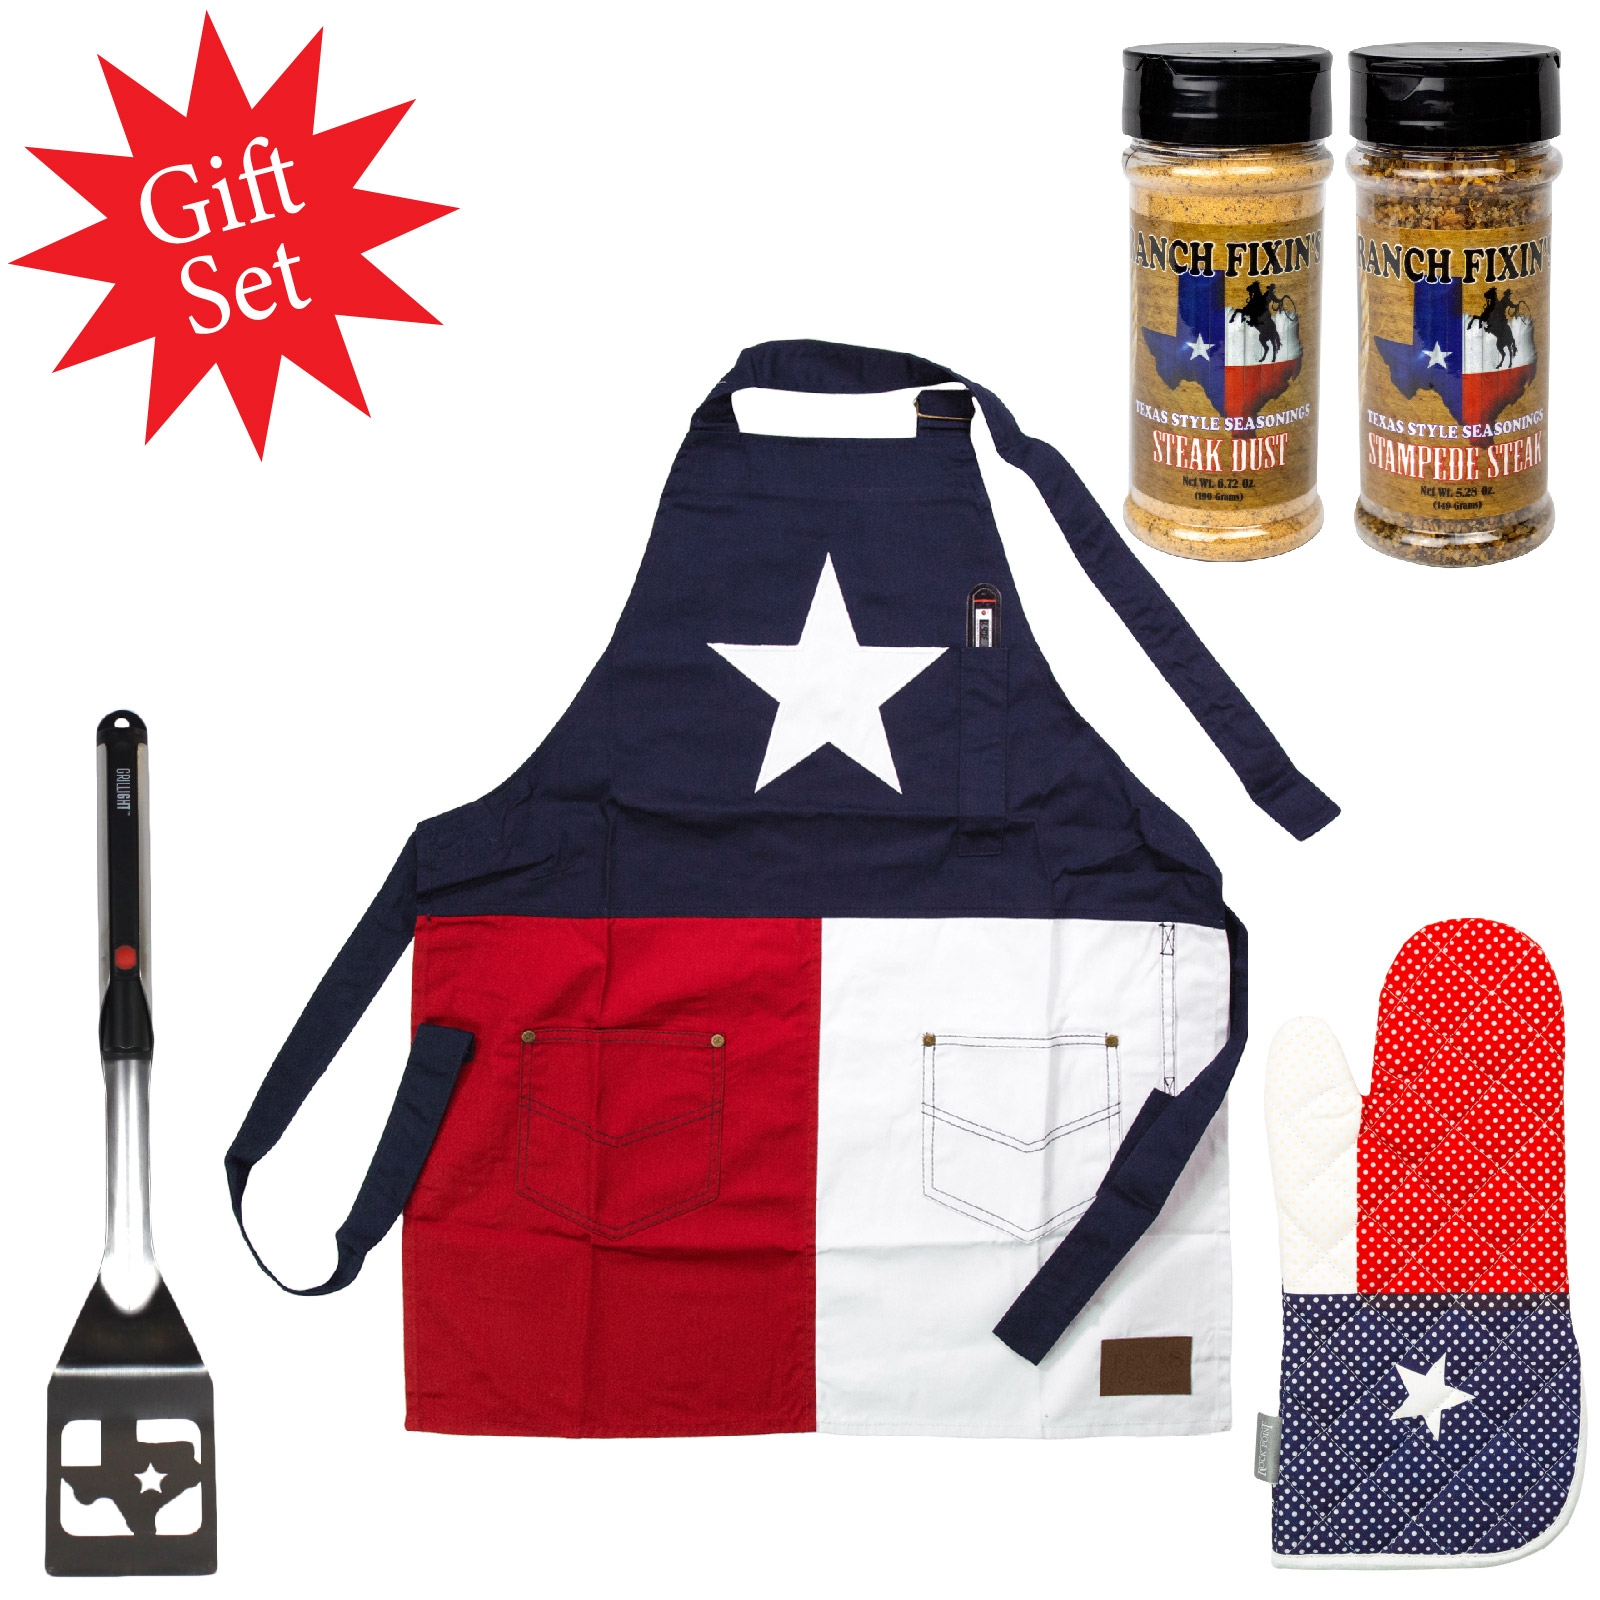 Texas Barbecue Gift Set